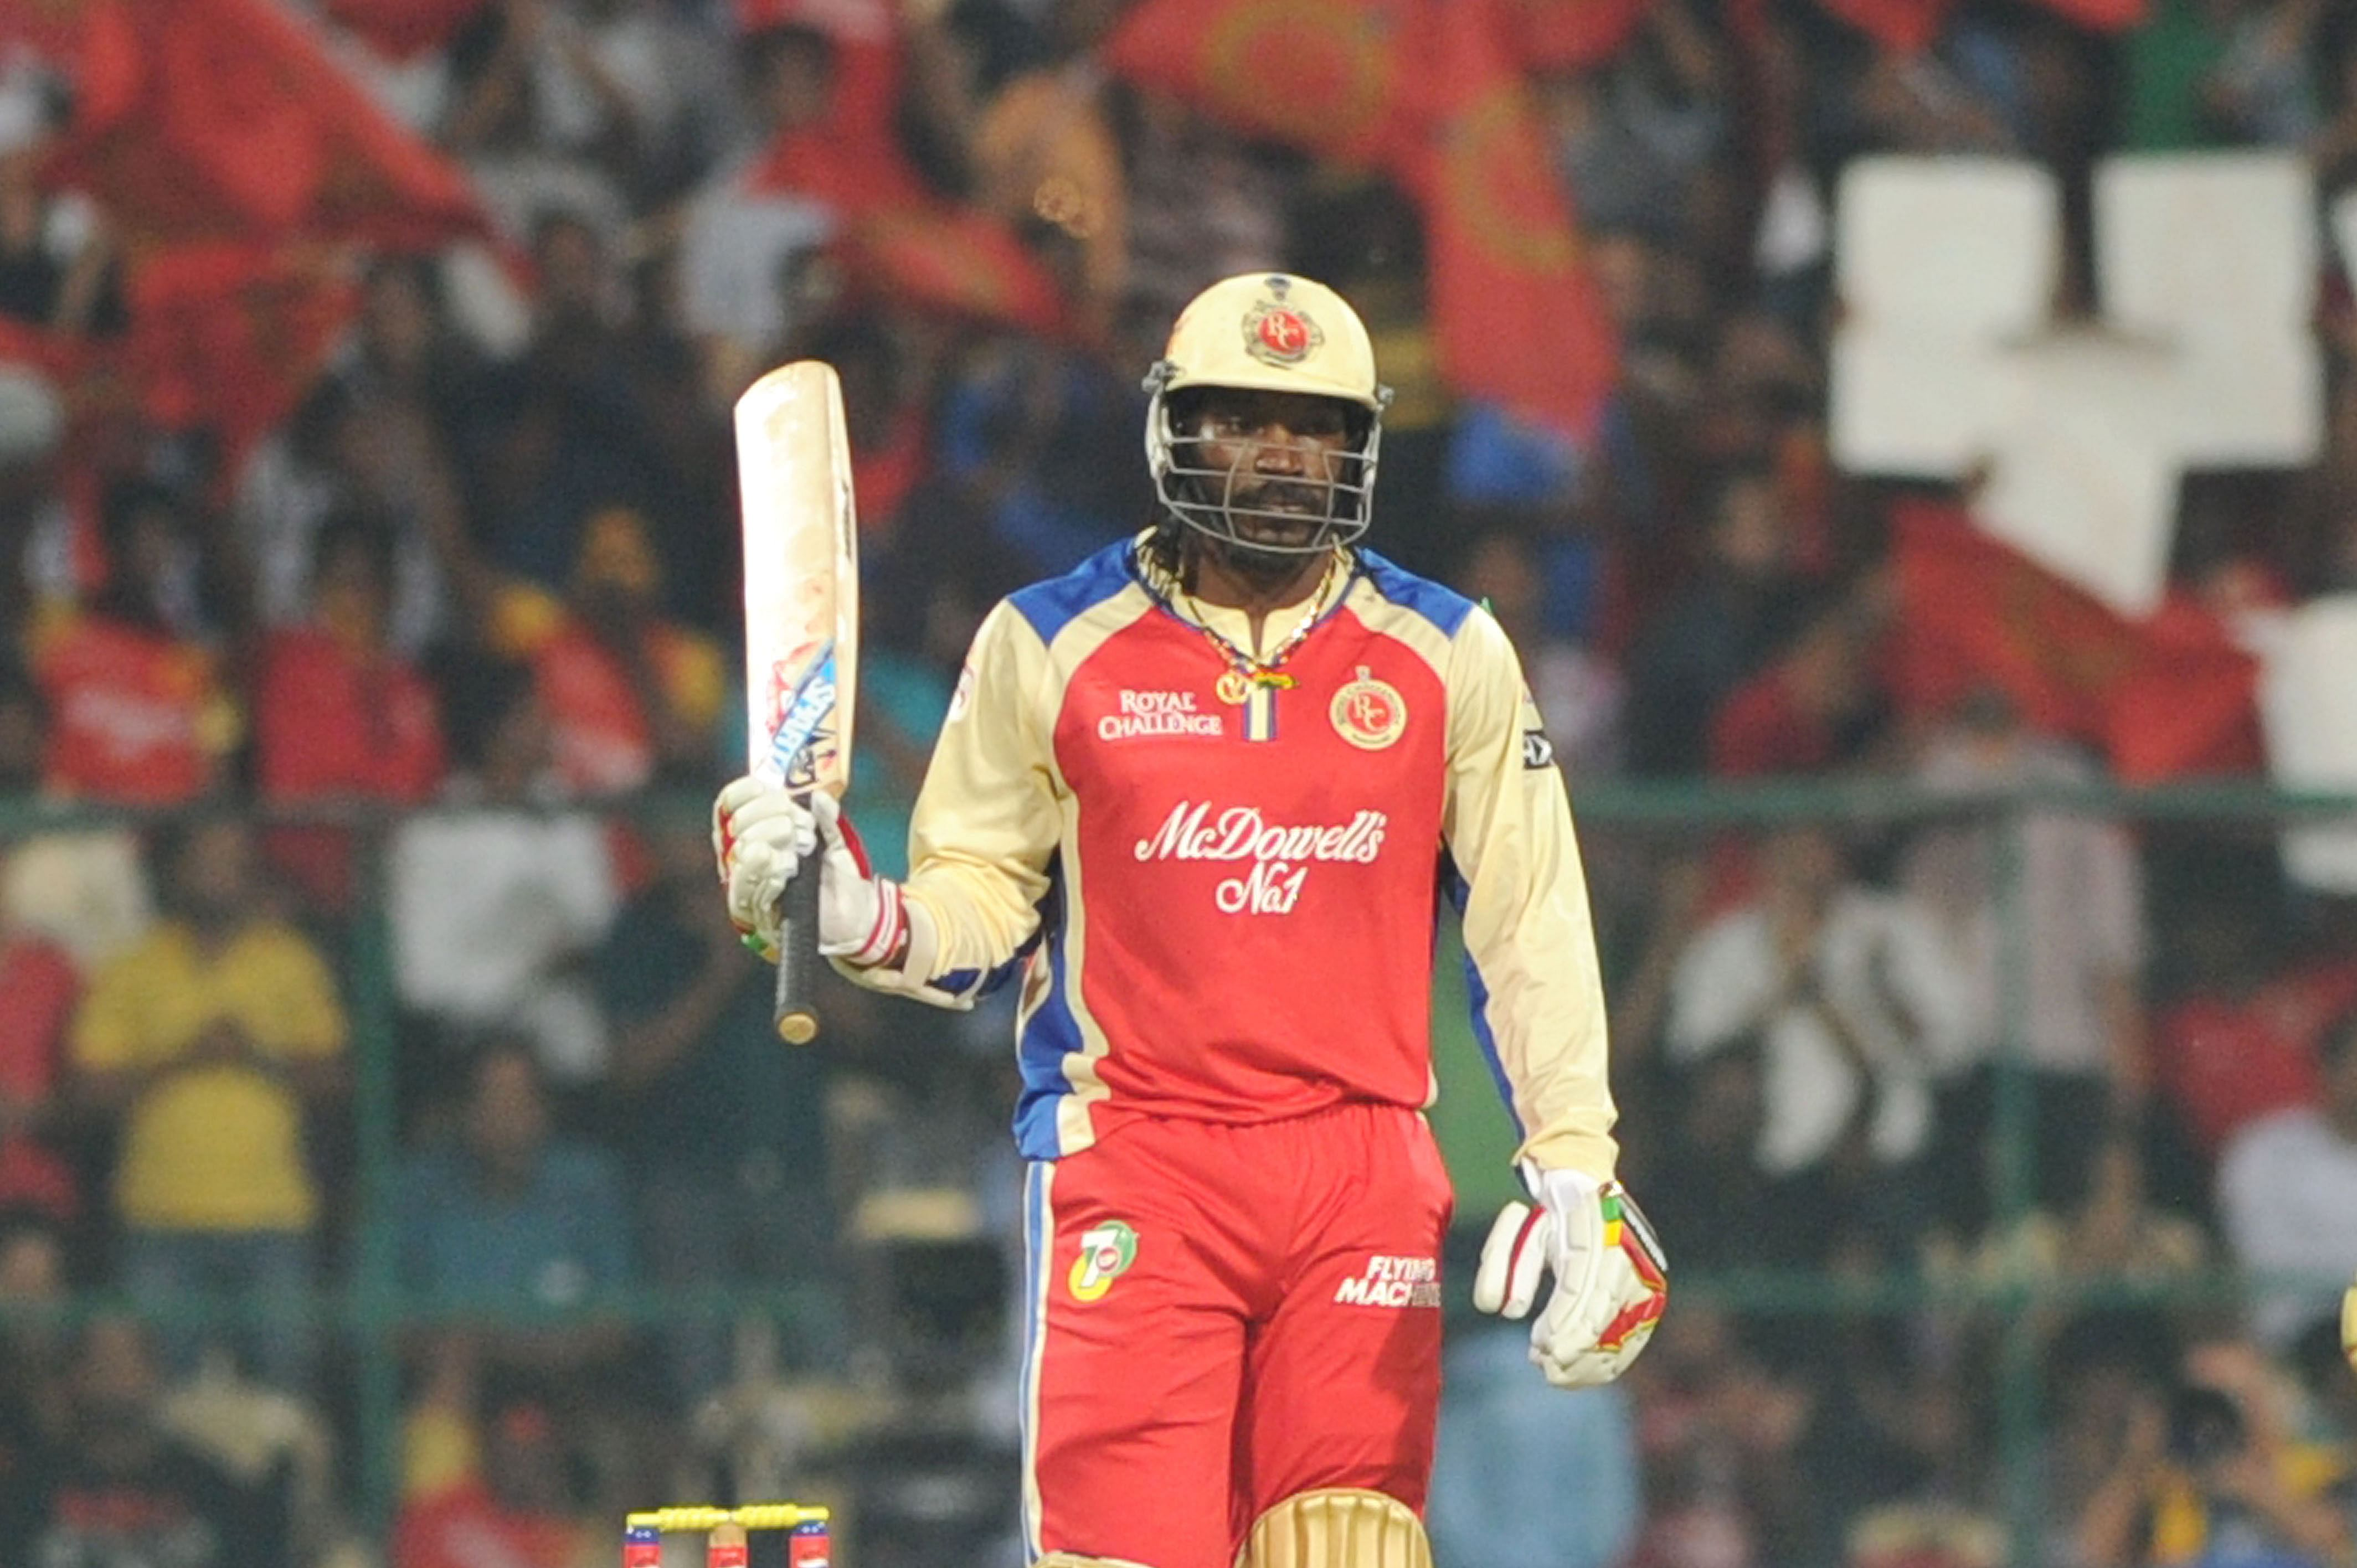 Chris Gayle in action during the match between RCB and MI in Bangalore on April 4 2013. (Photo: IANS)